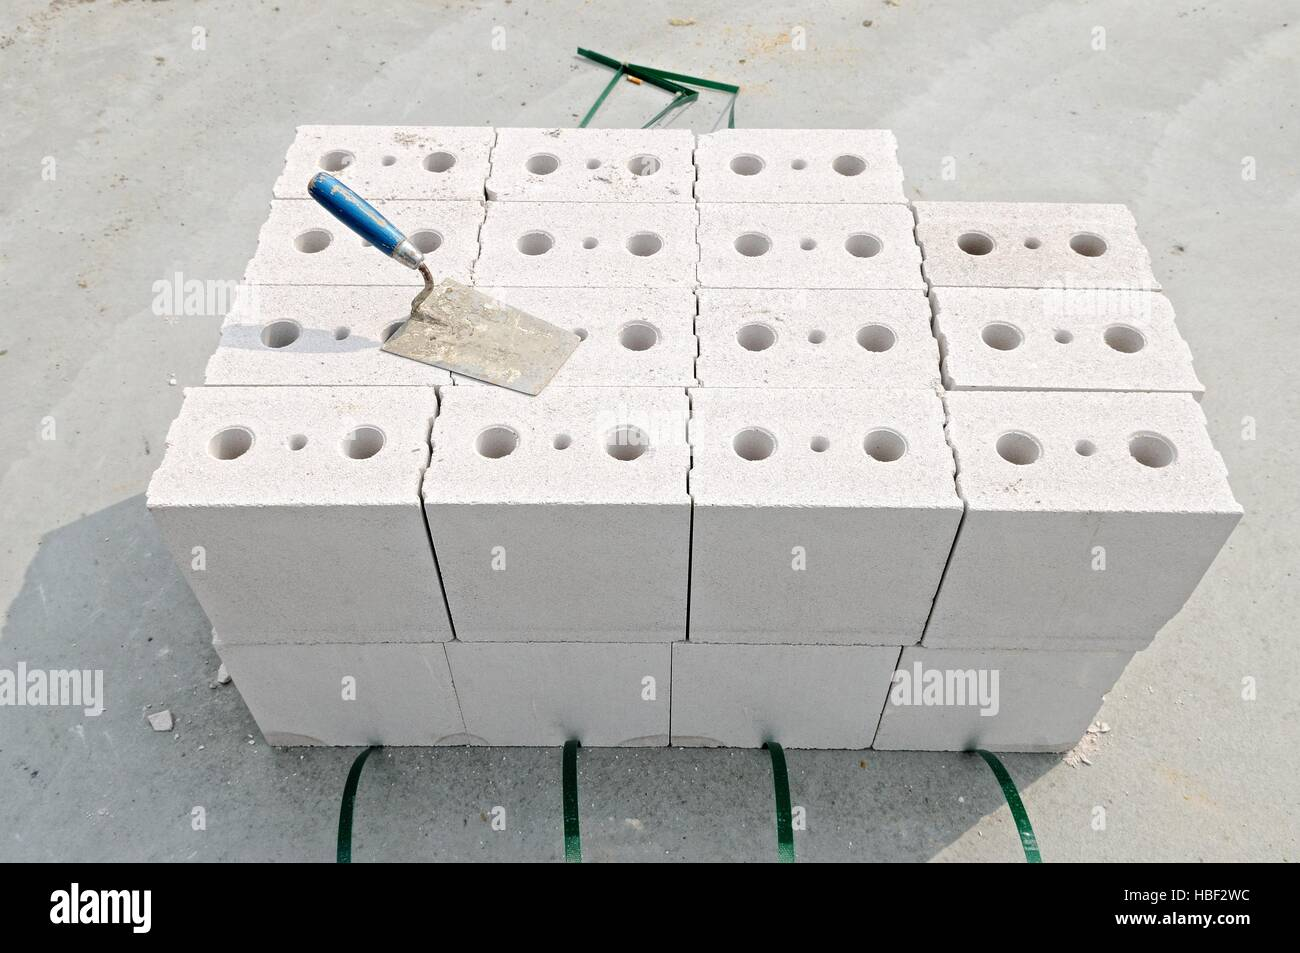 Calcium Silicate Brick : Calcium silicate bricks ready to wall up stock photo